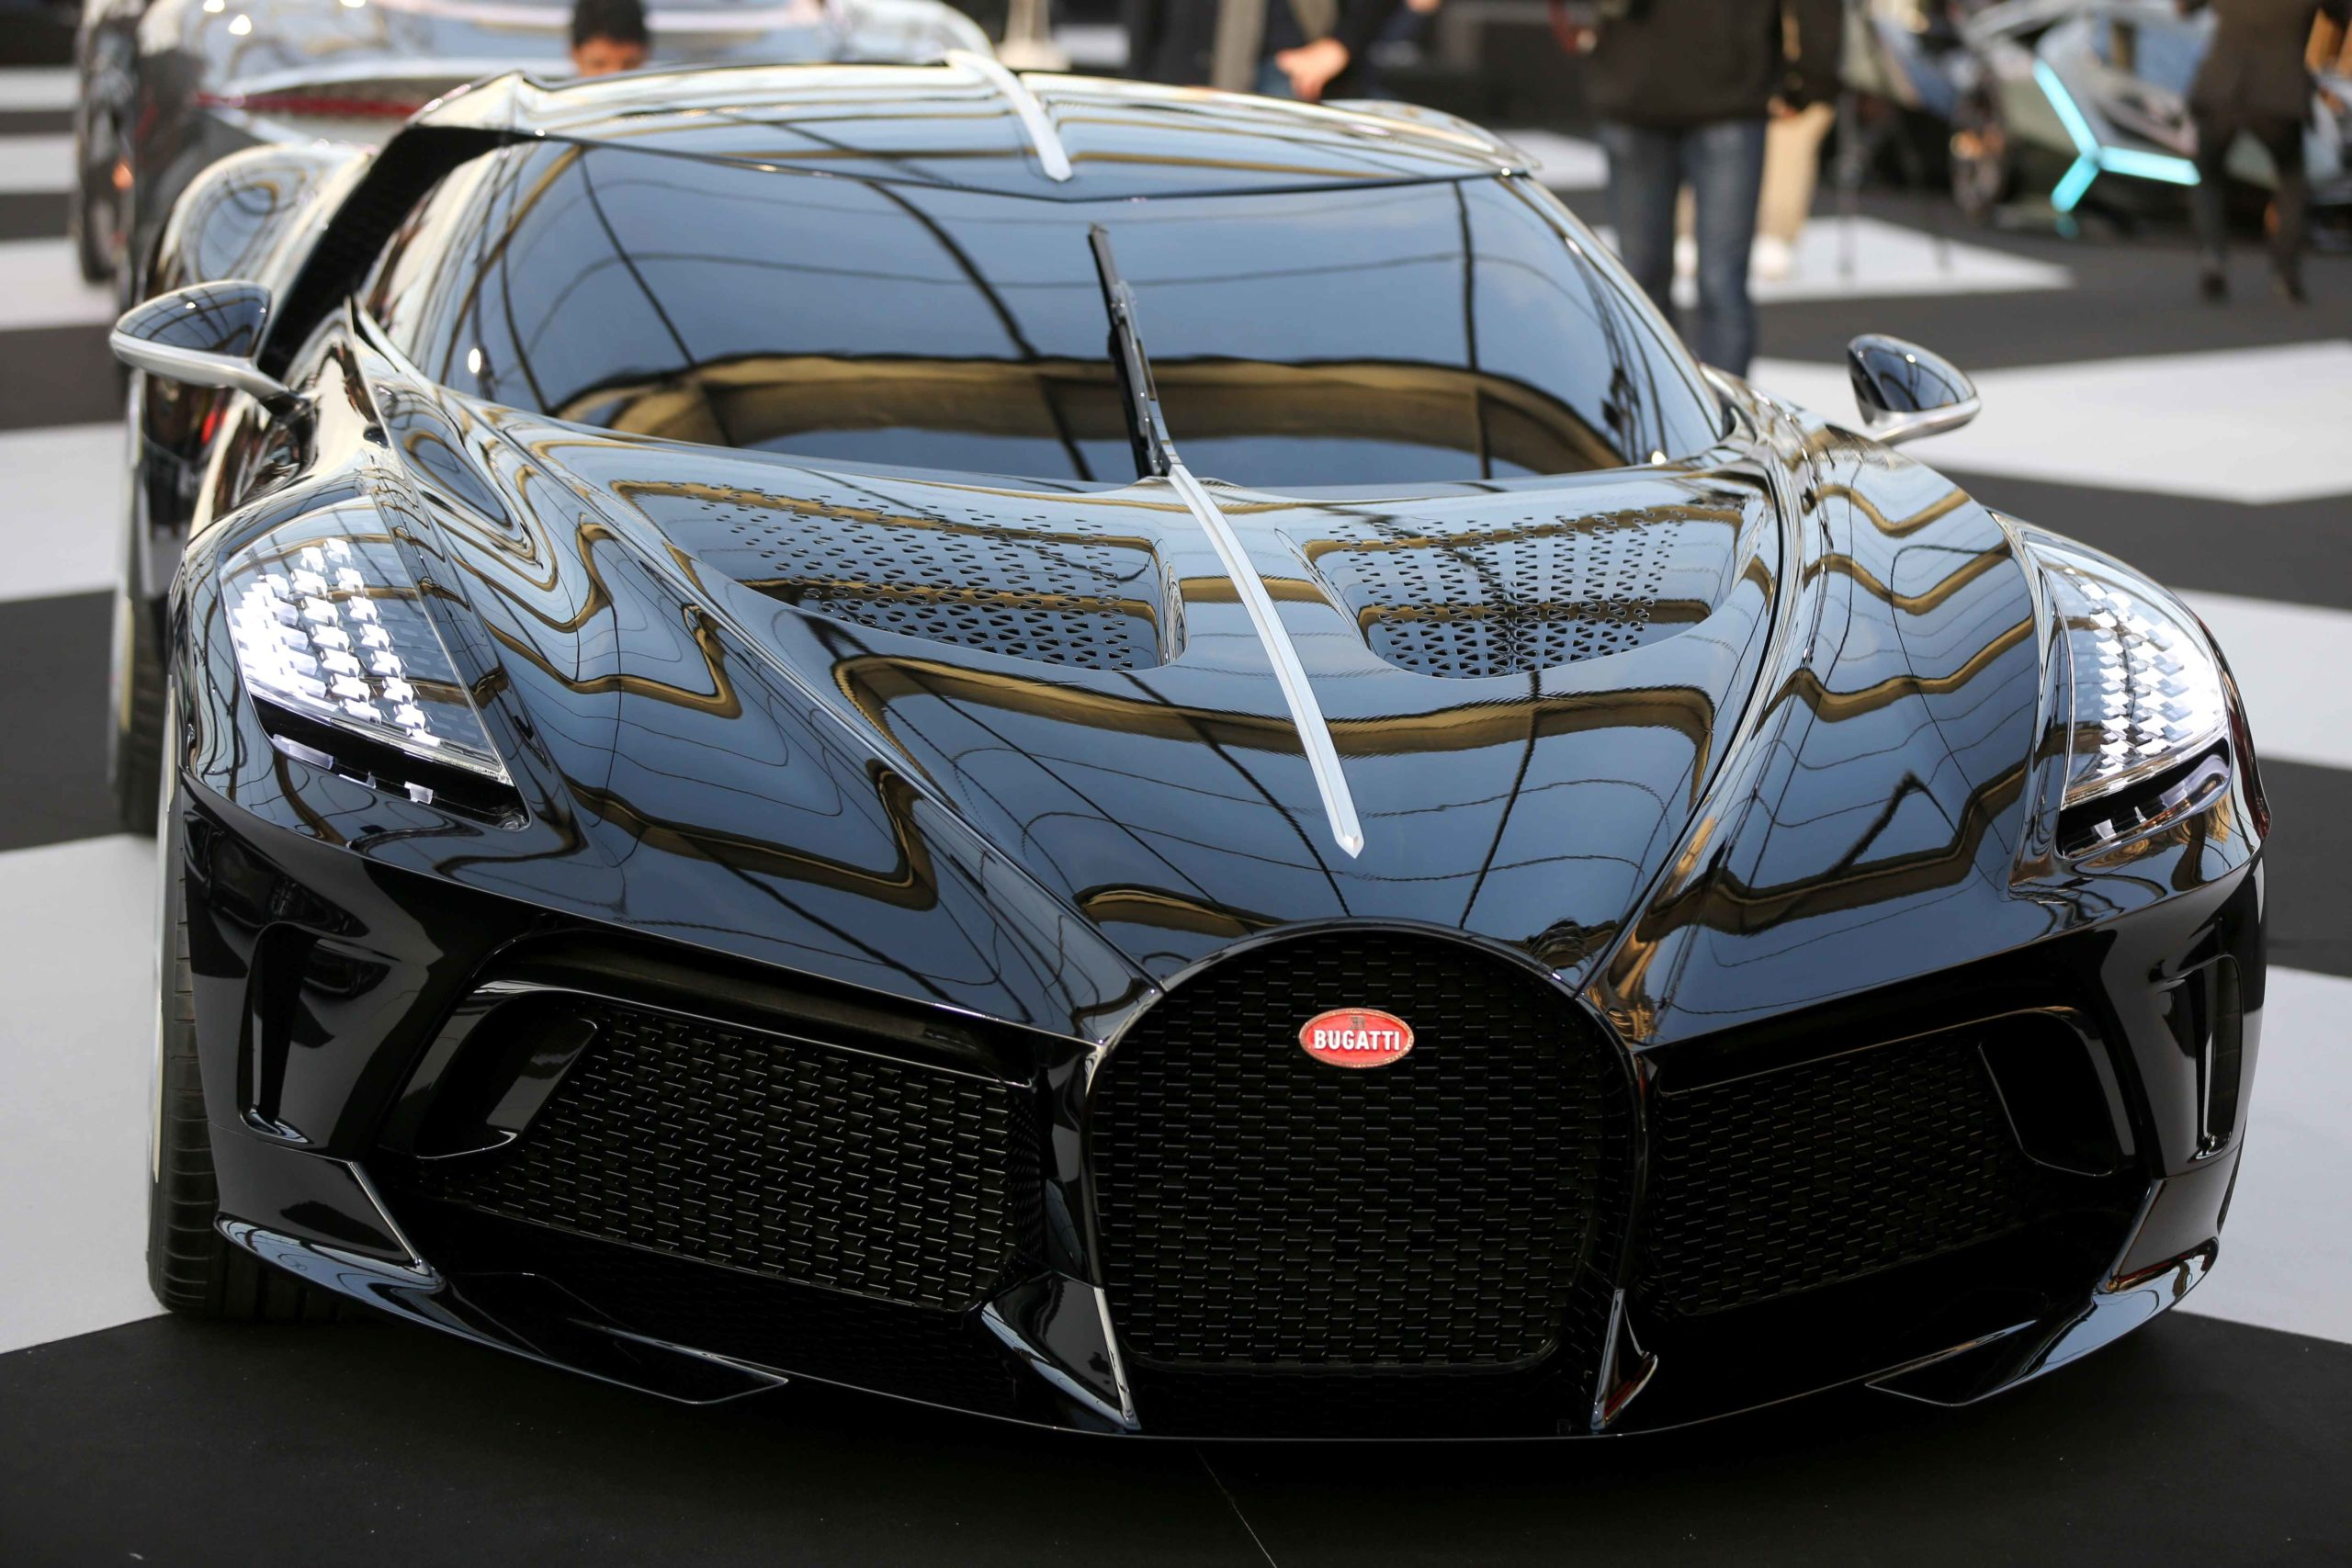 A Bugatti La Voiture Noire concept-car is displayed during the press day of the 2020 concept-cars exhibition and automobile design in Paris on January 20, 2020. The latest concept-cars and supercars are displayed during this exhibition where the greatest d